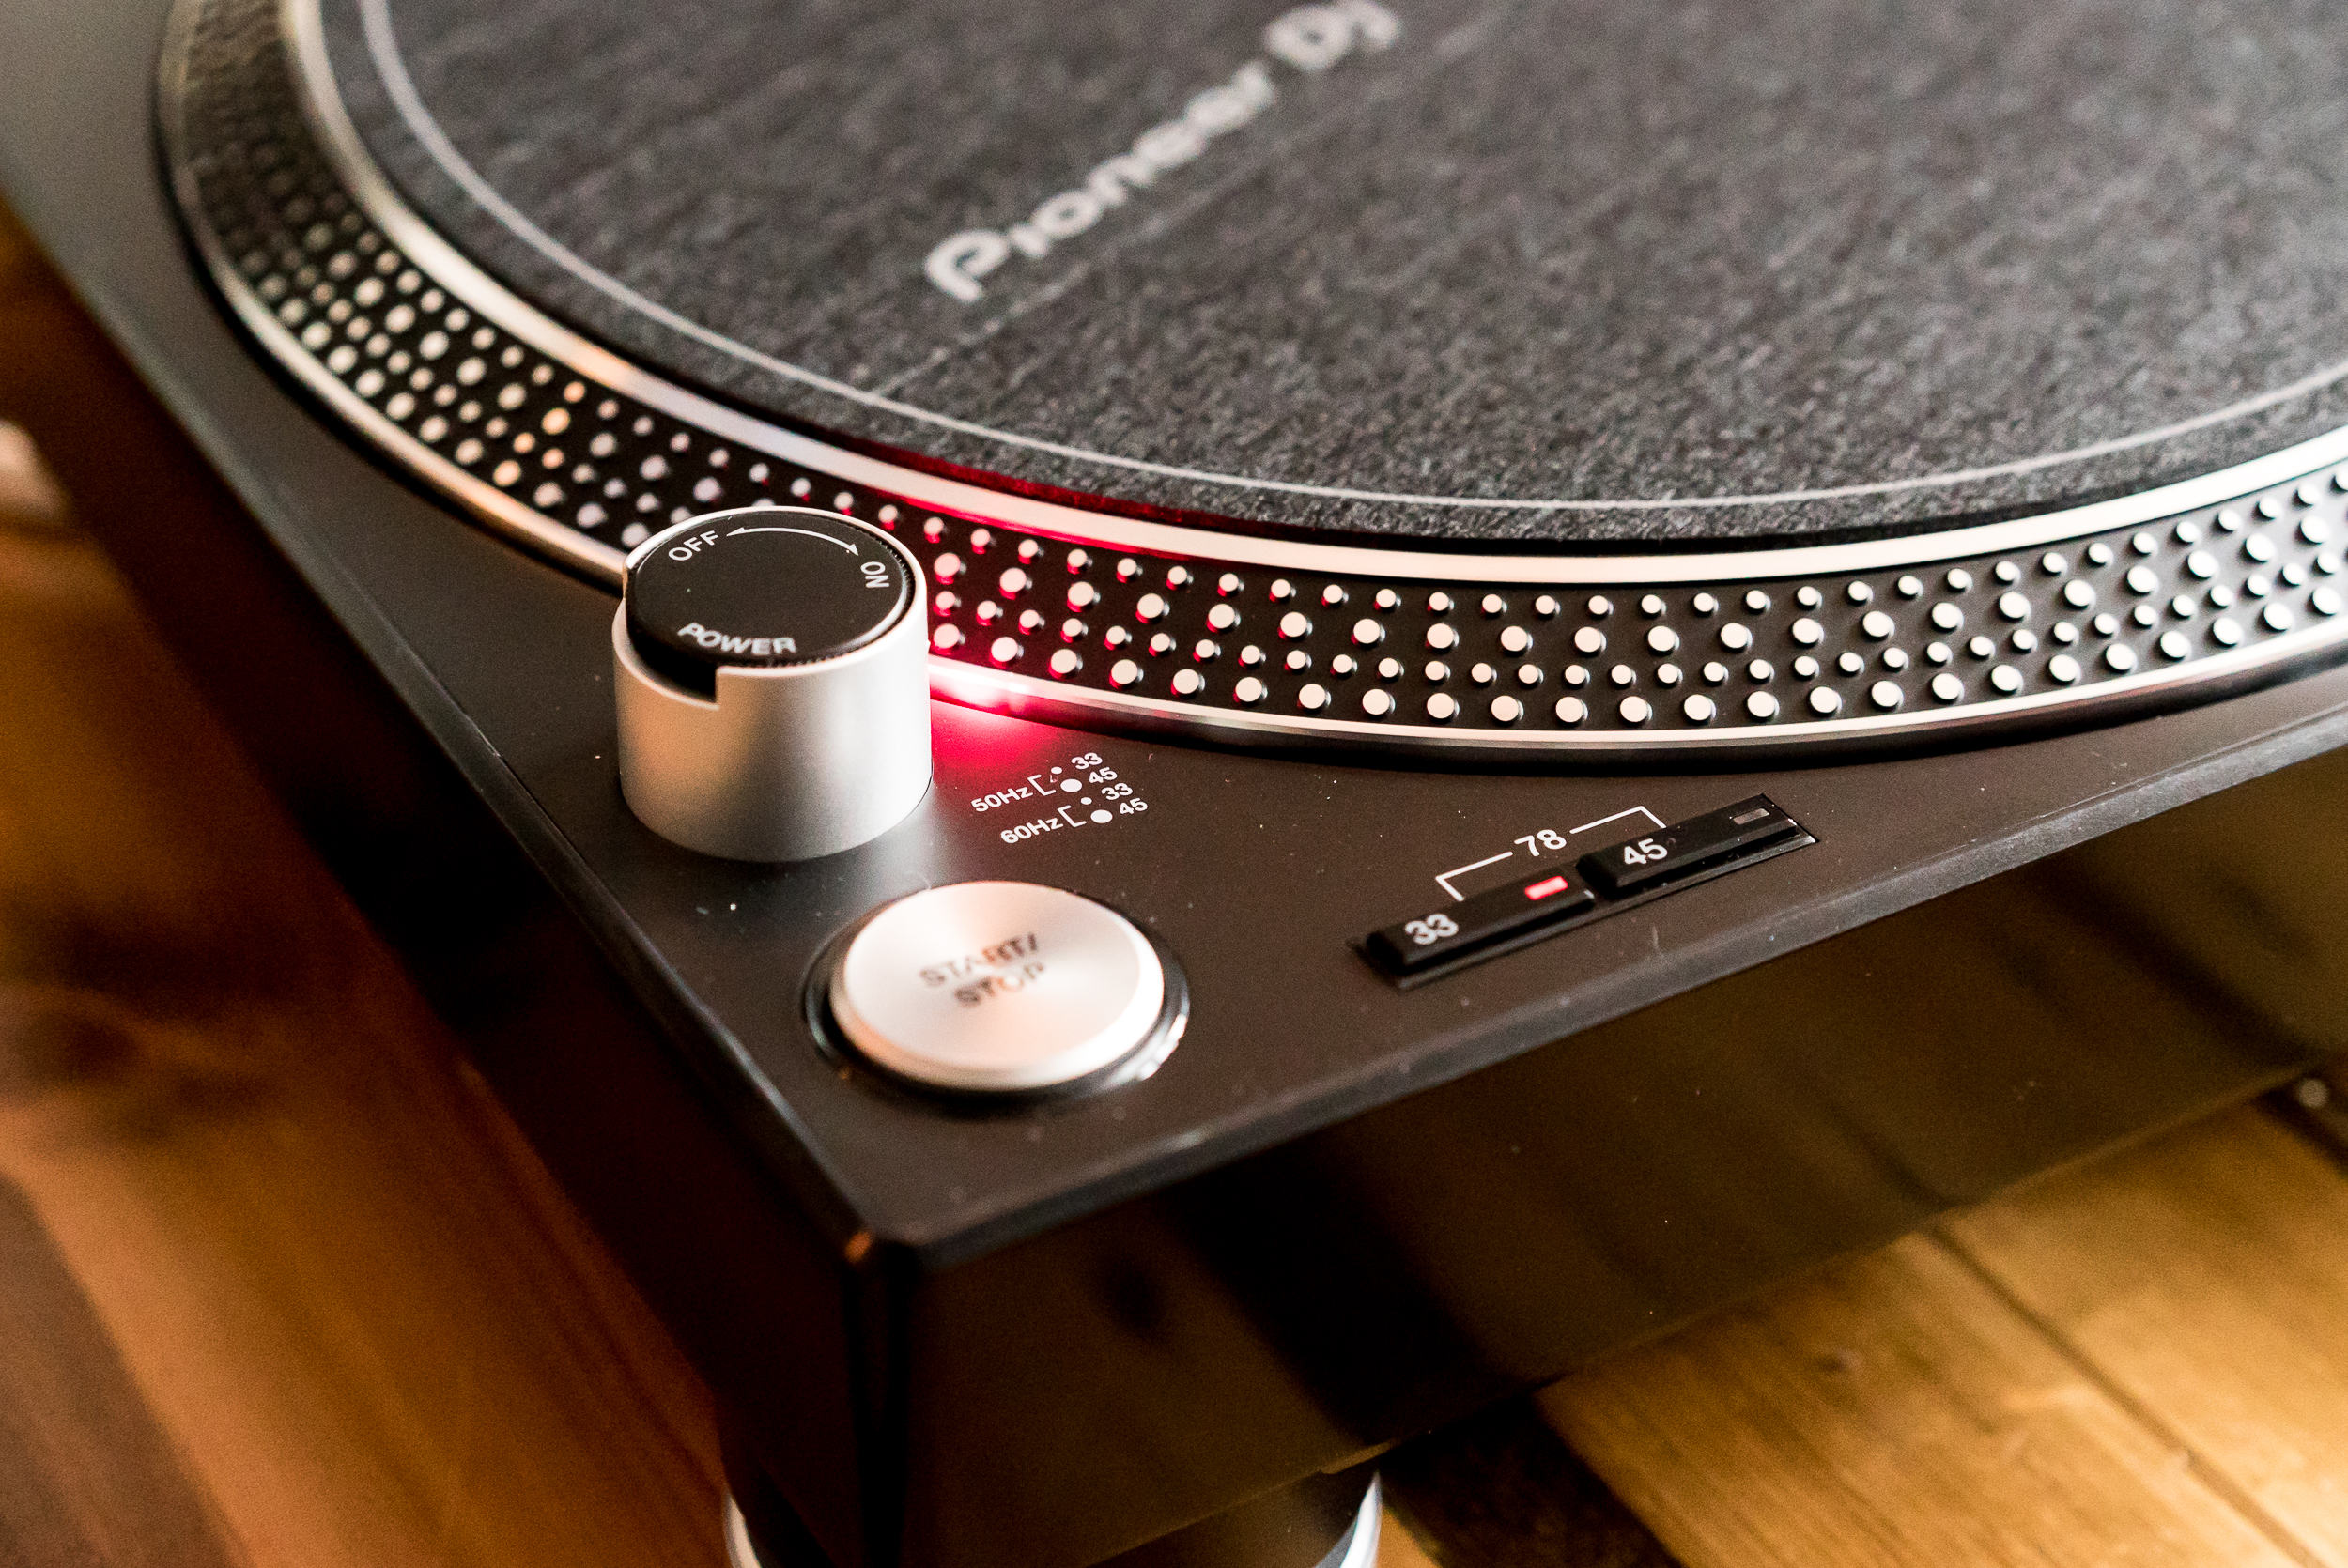 Pioneer PLX 500 review: A turntable for vinyl n00bs and